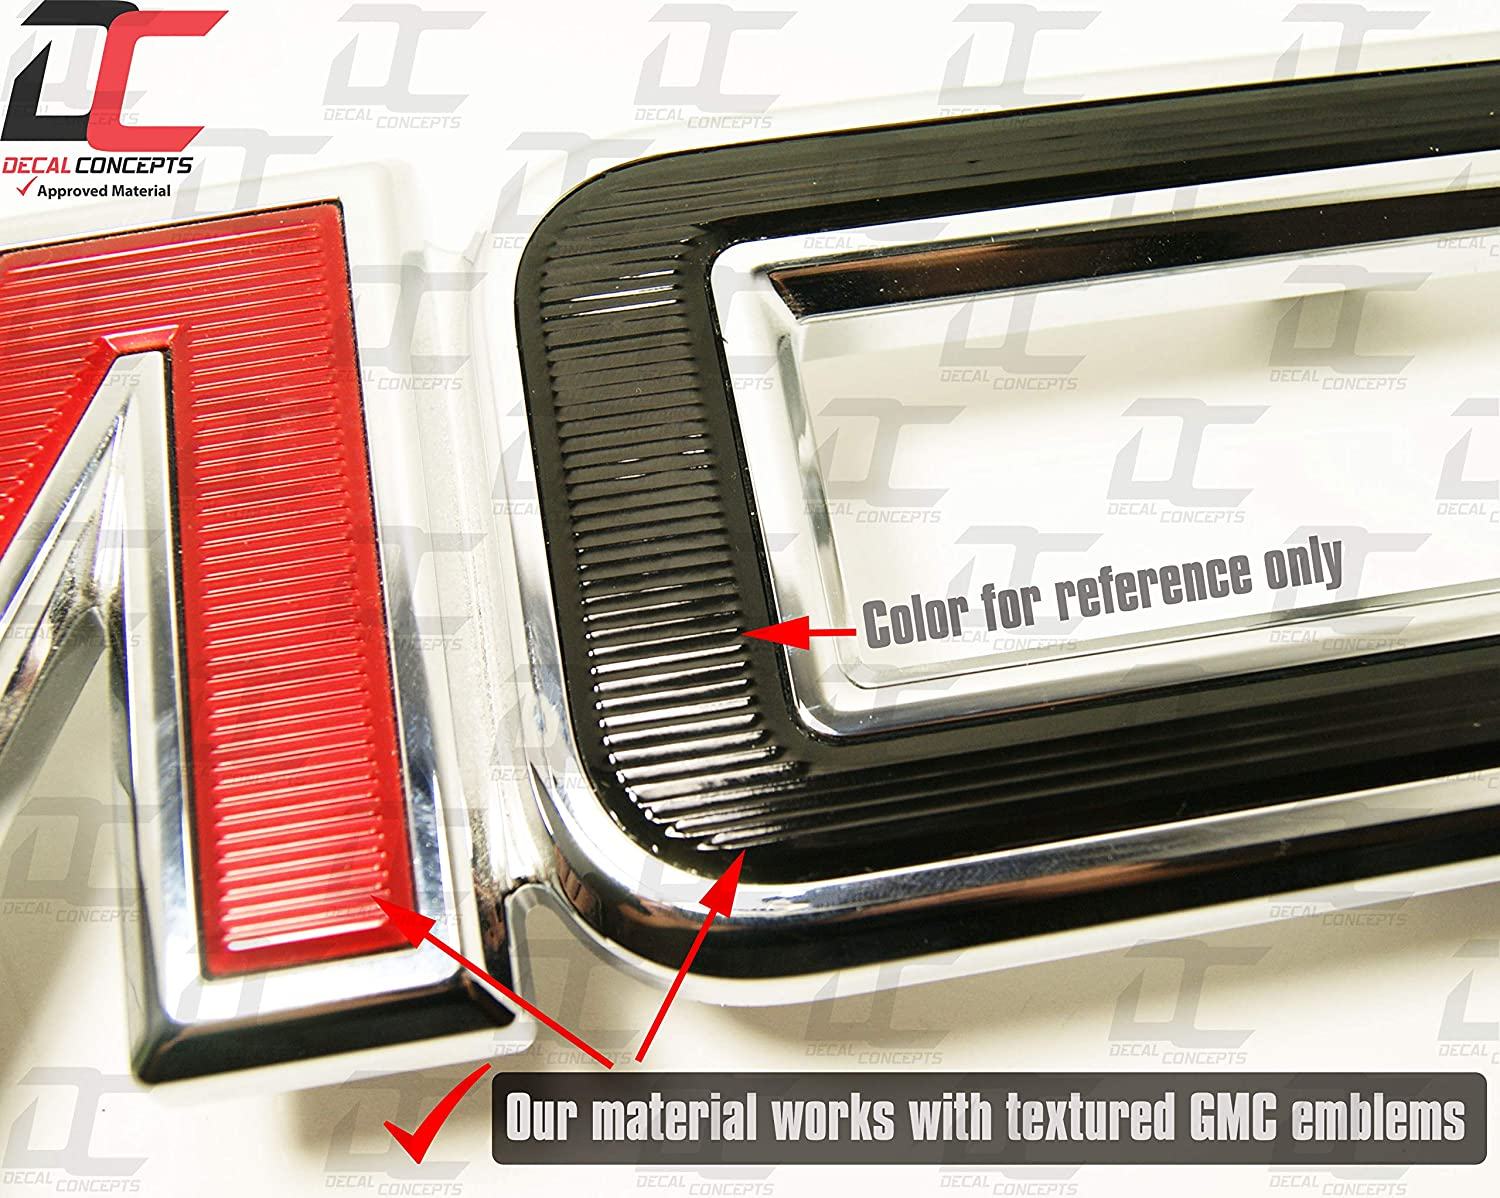 2 Kits Decal Concepts GMC Sierra//Yukon Black Carbon Fiber Front and Rear Grill Emblem Overlay Wrap Kit- 7-17